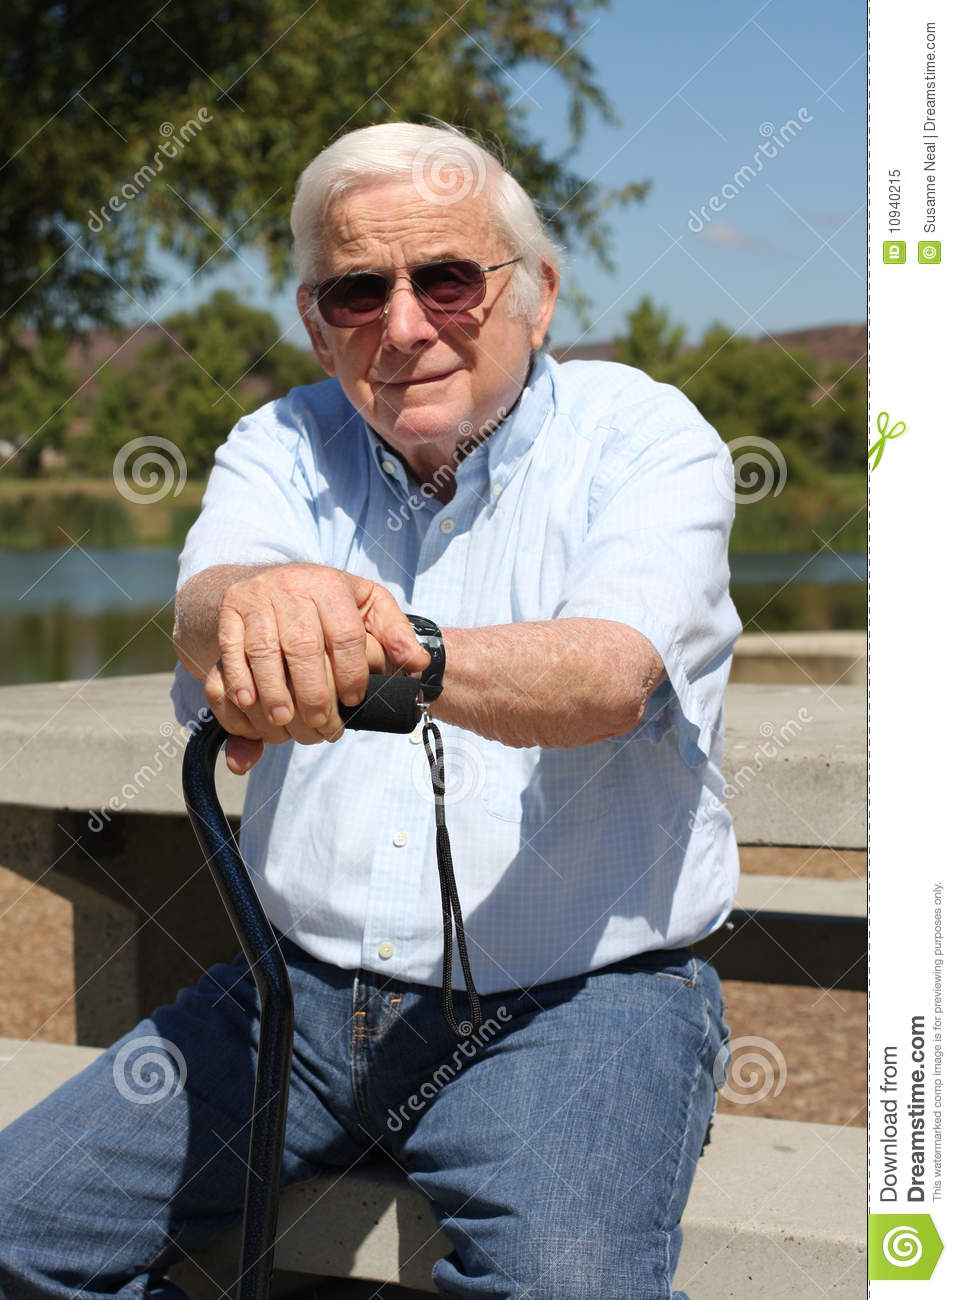 Elderly Man With Cane At Park Stock Image Image Of